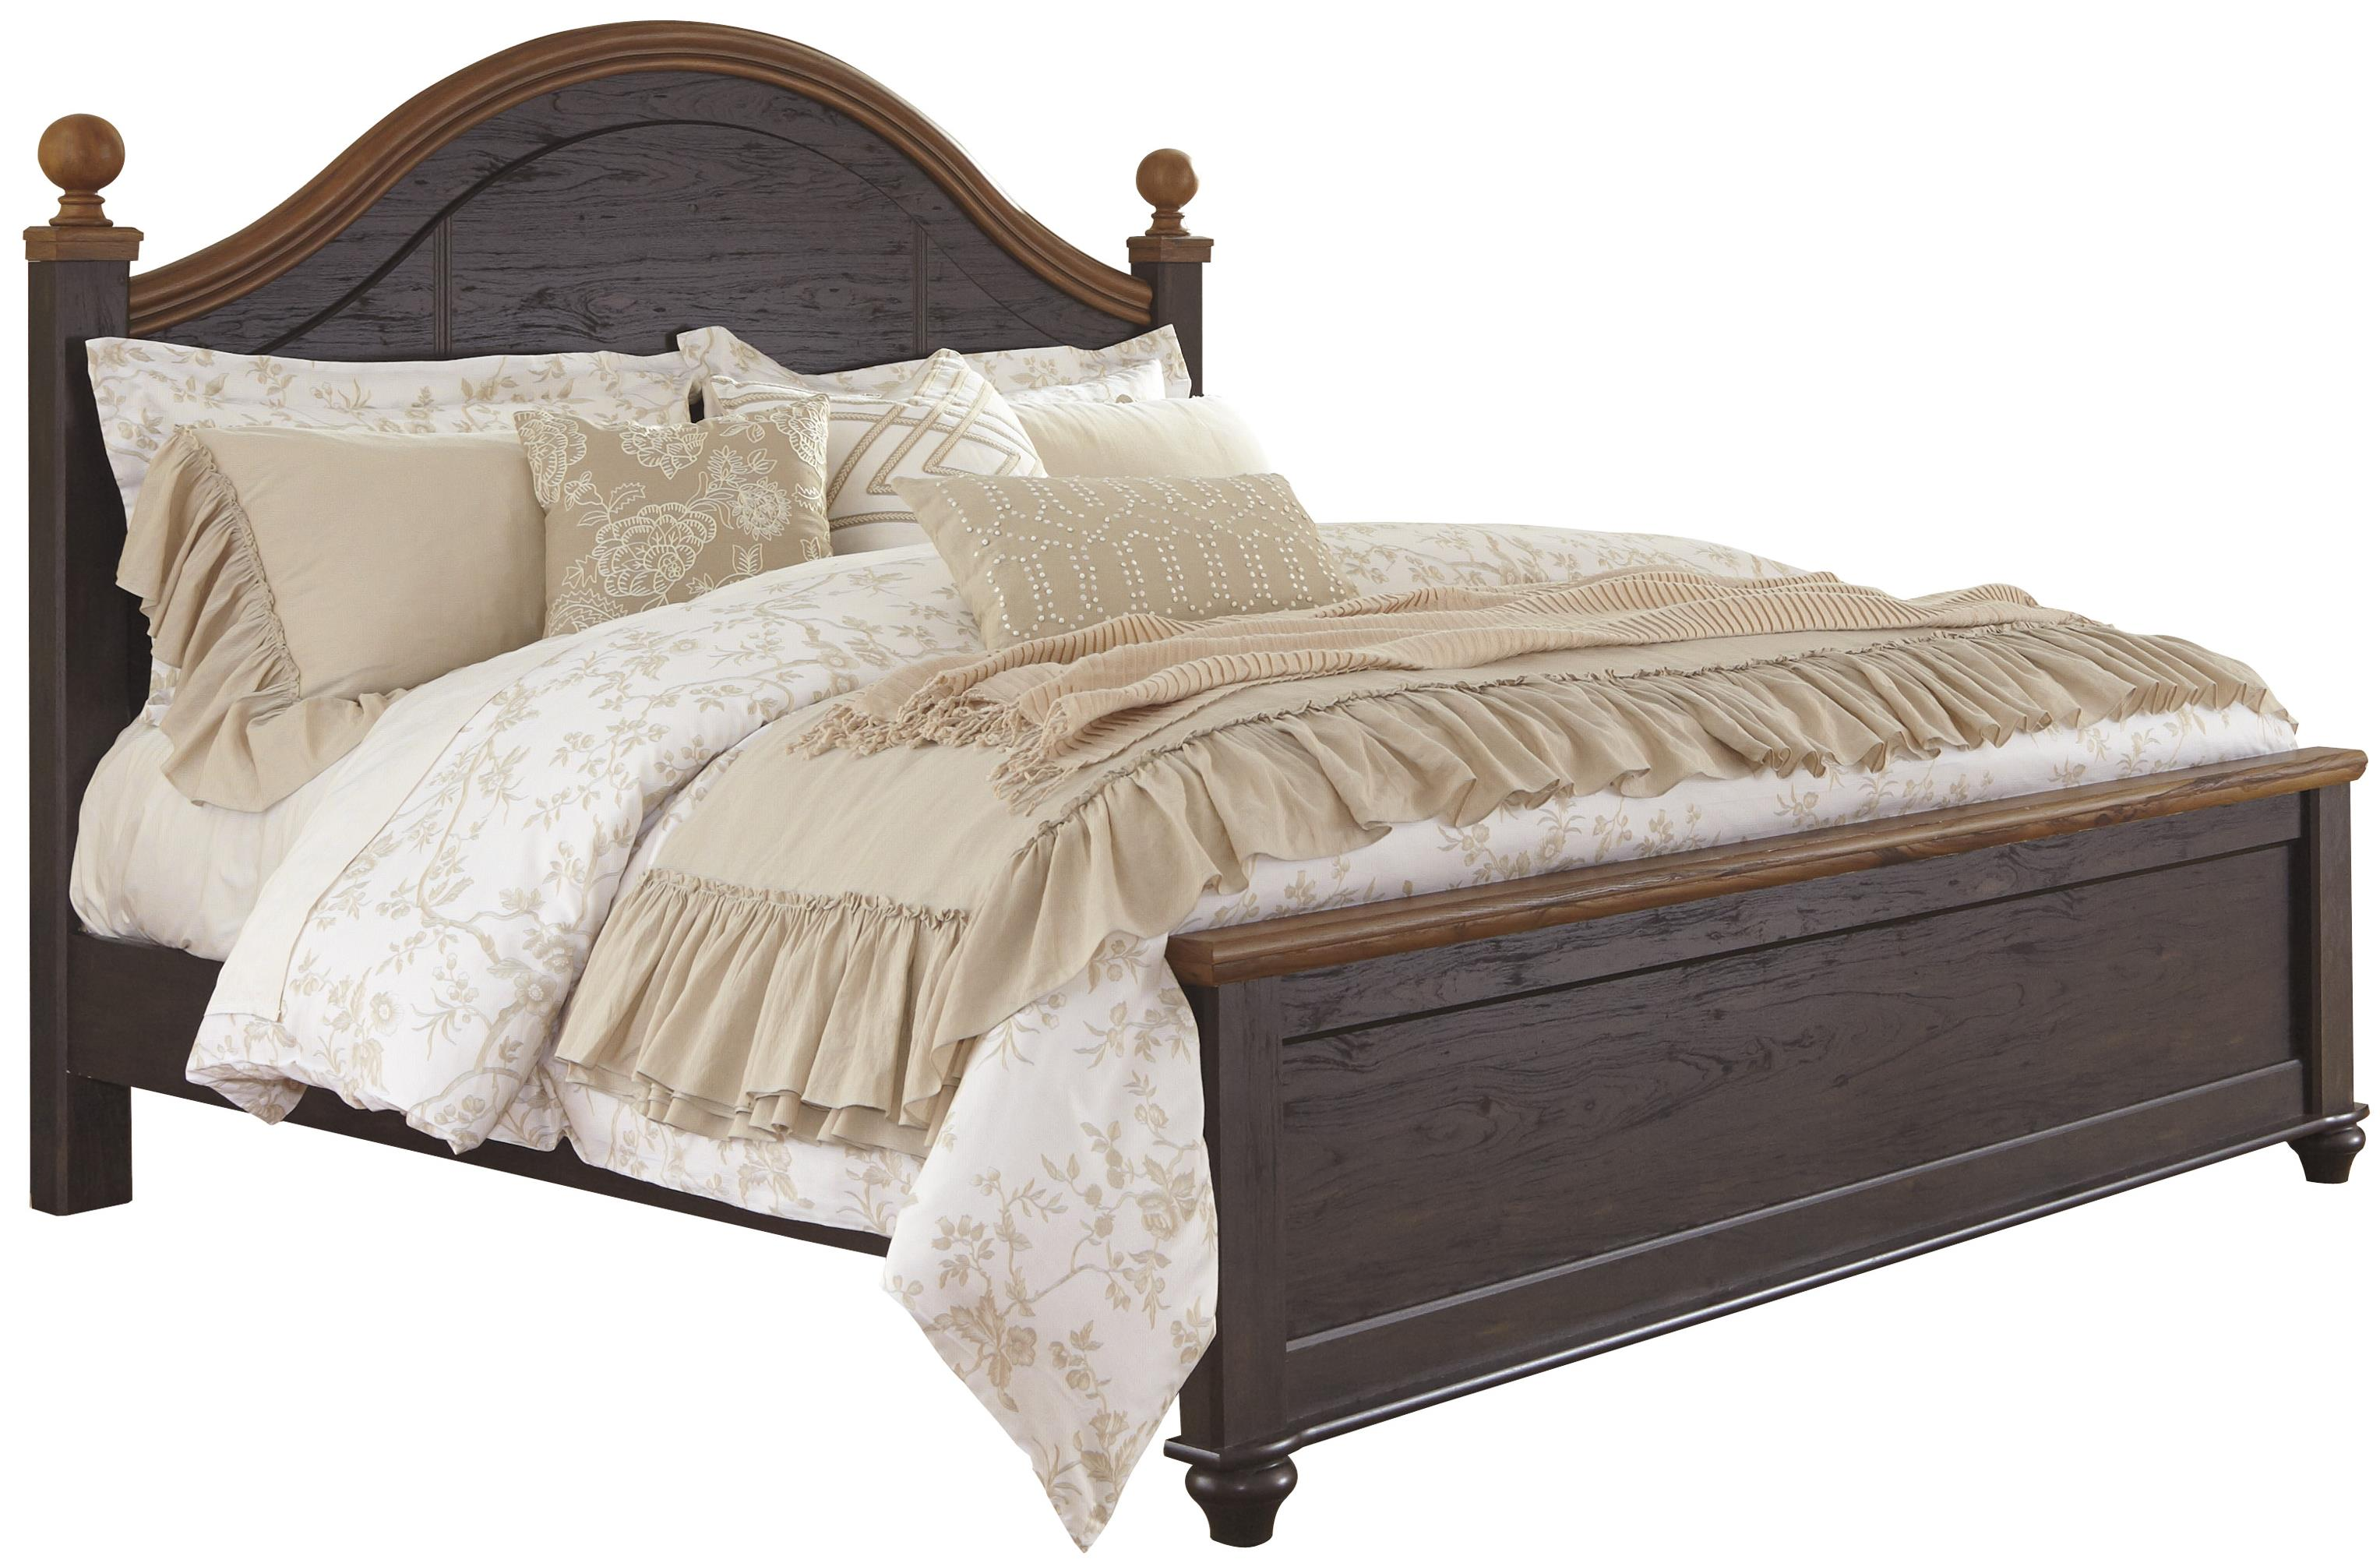 Signature Design by Ashley Maxington King Poster Bed - Item Number: B220-68+56+95